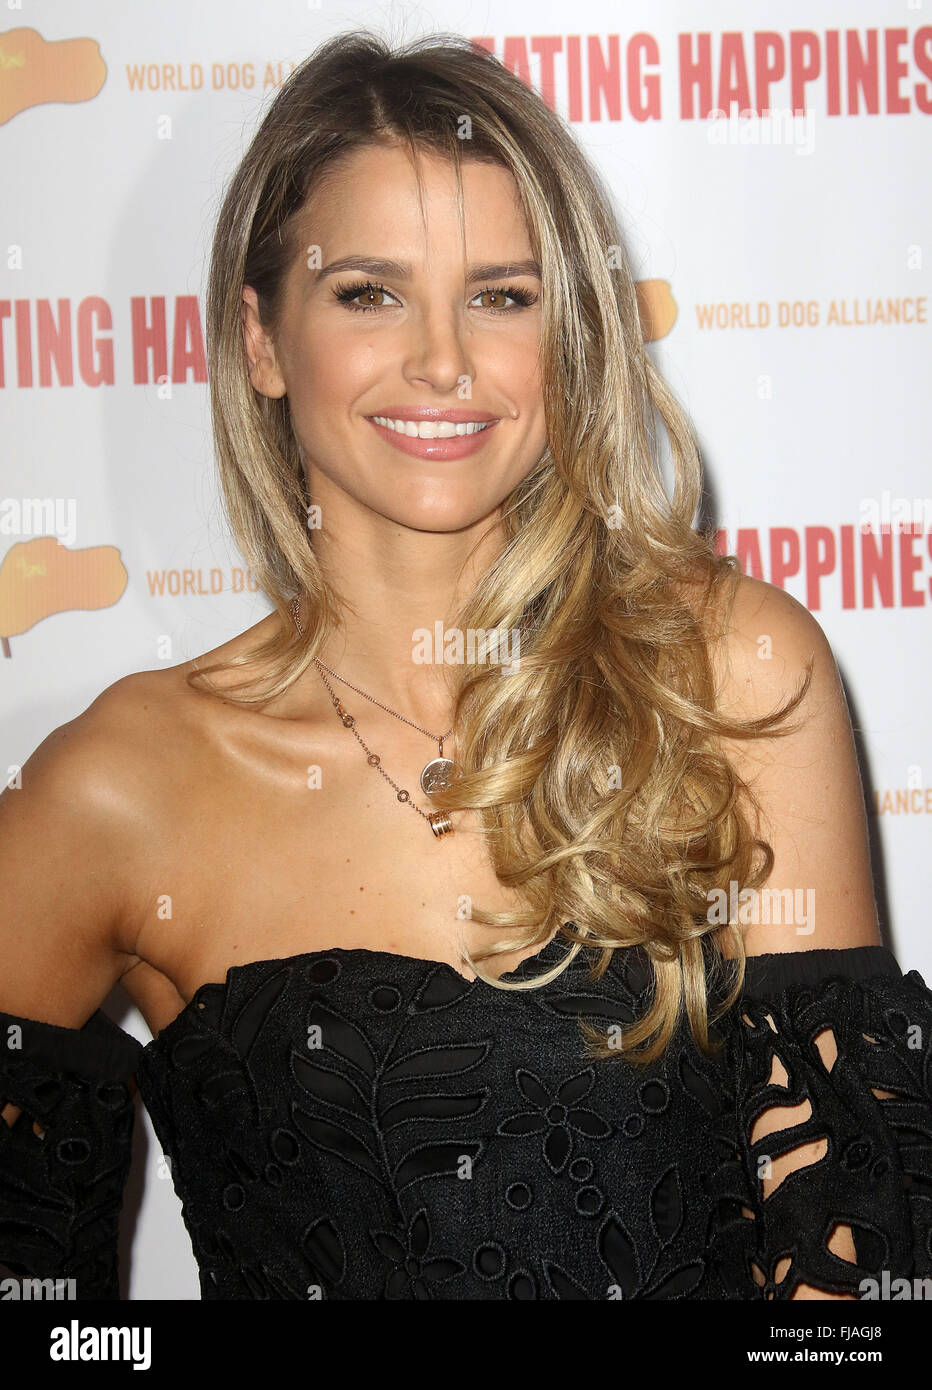 Jan 25, 2016 - London, England, UK - Vogue Williams attending 'Eating Happiness' - VIP screening at the - Stock Image